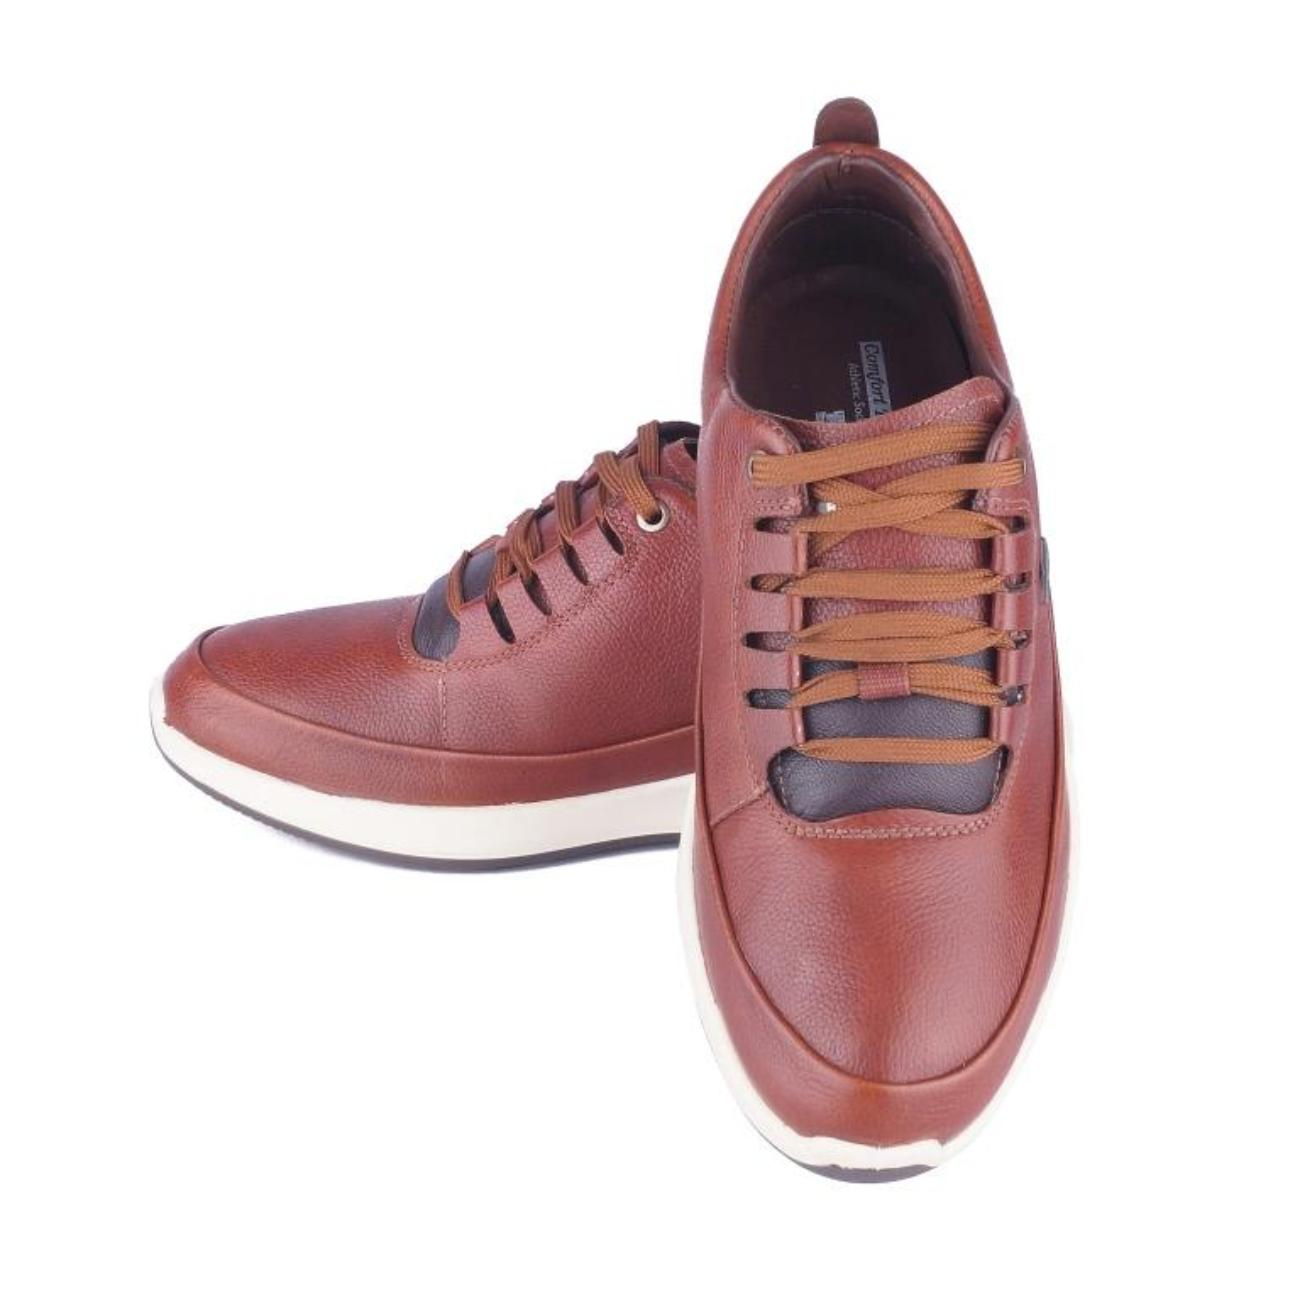 brown casual shoes rubber sole